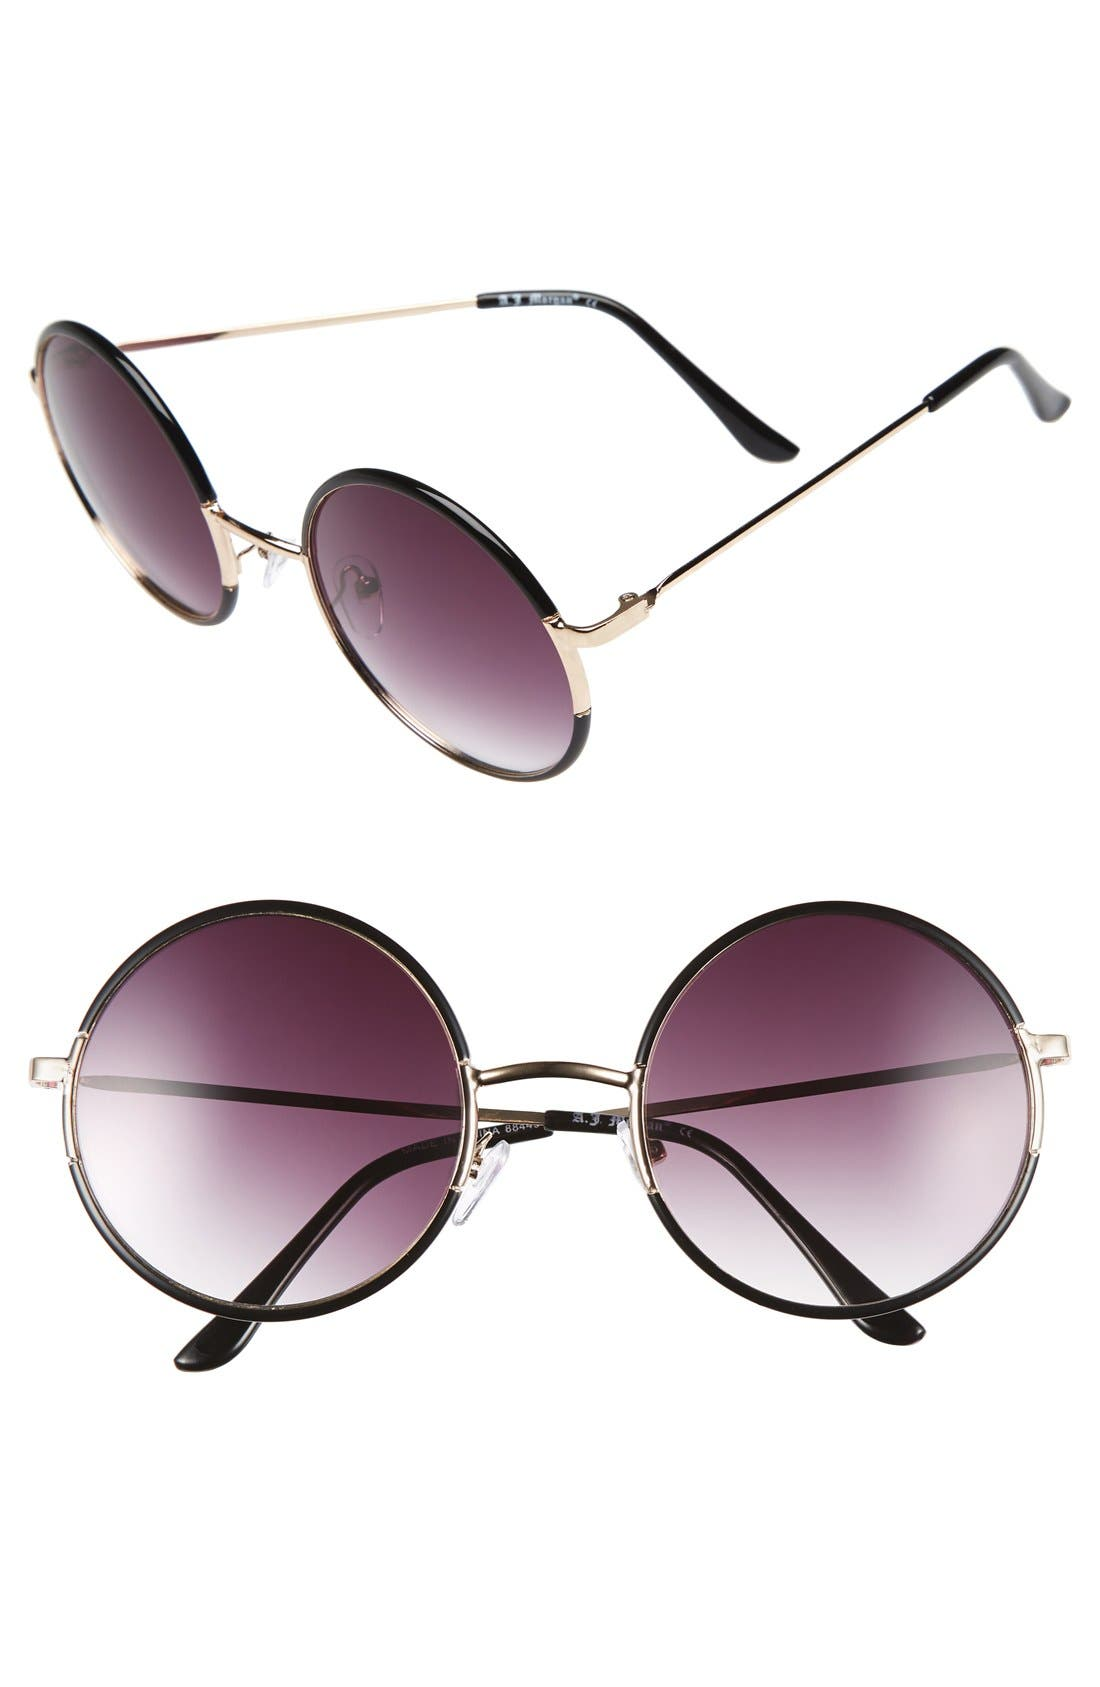 Alternate Image 1 Selected - A.J. Morgan 'Oh Nice' 55mm Round Sunglasses